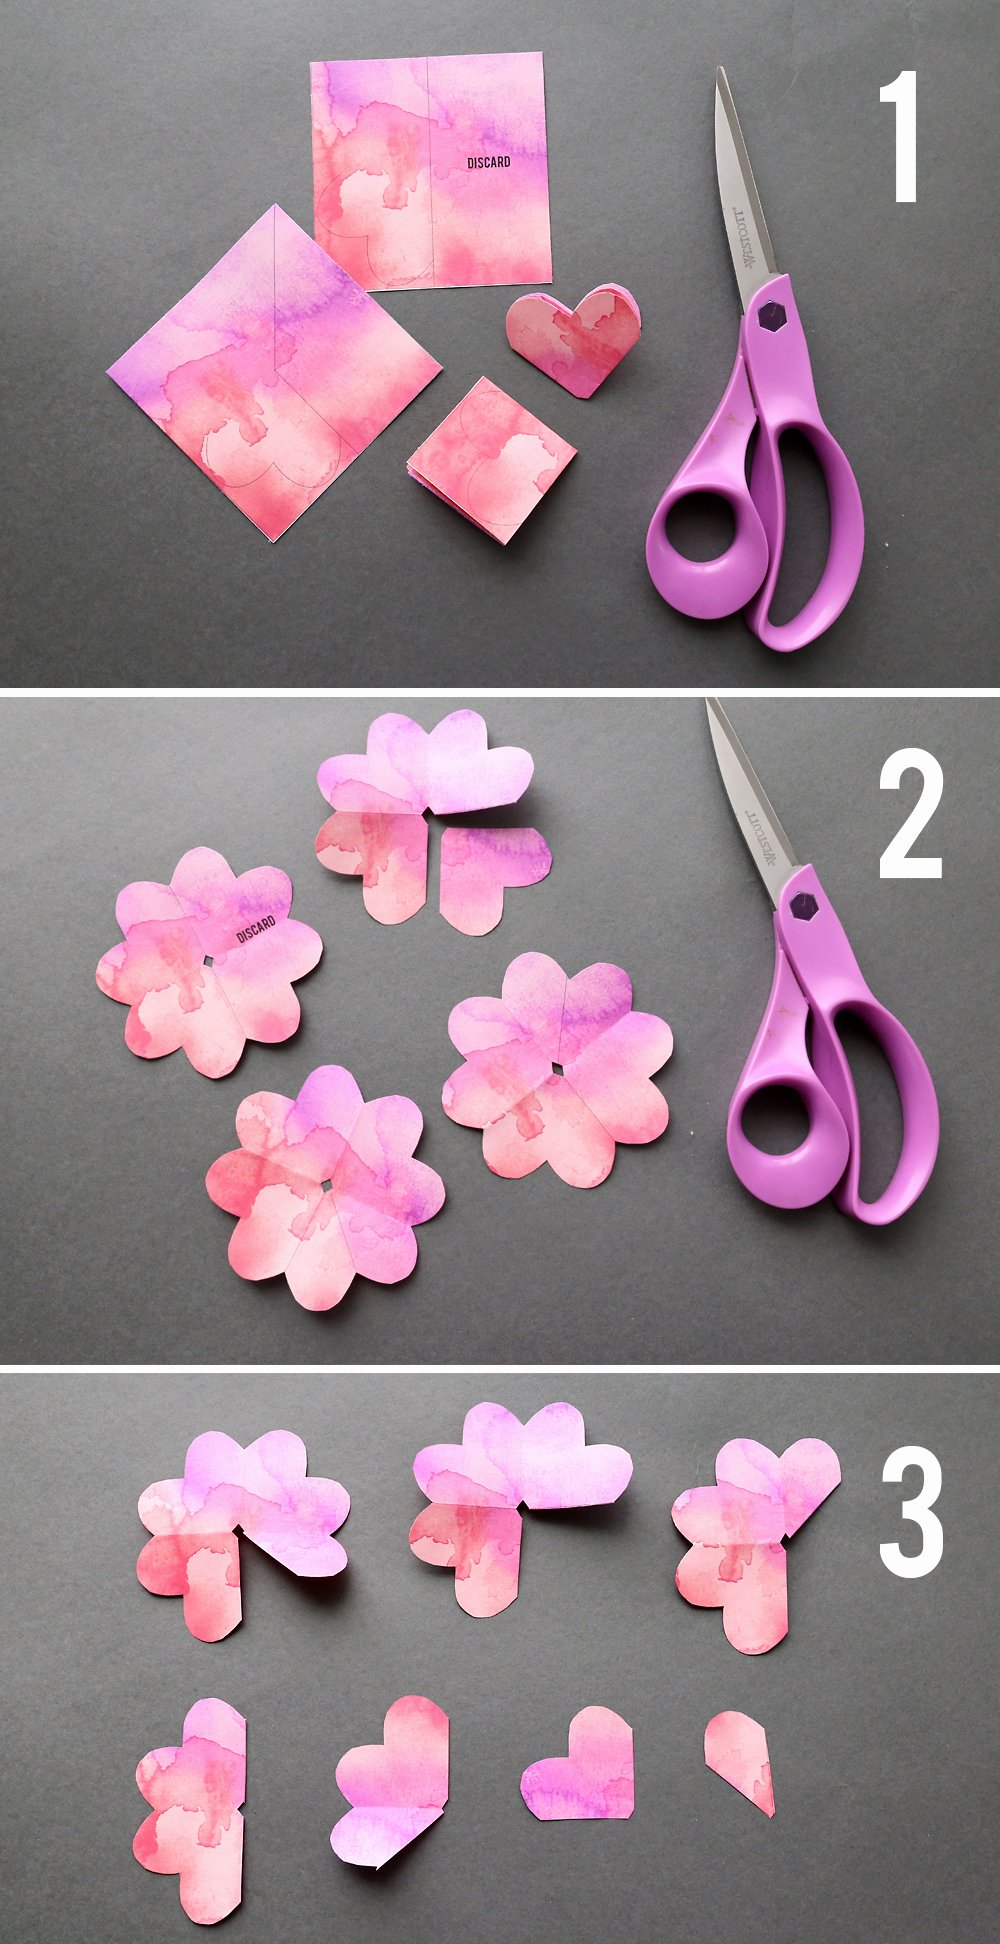 Step by Step Instruction Template Best Of Make Gorgeous Paper Roses with This Free Paper Rose